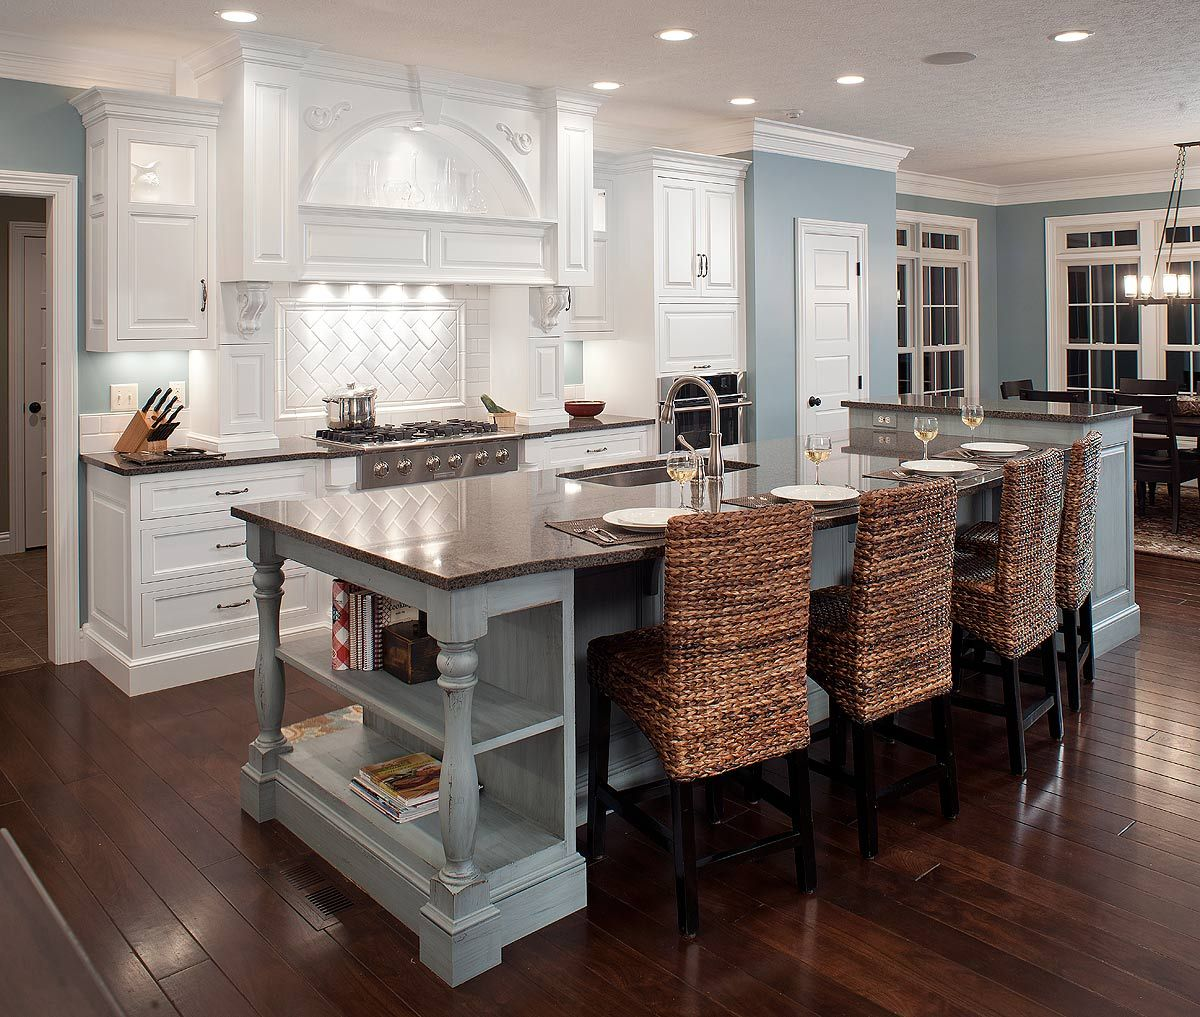 White Kitchen  Kitchen Design Pictures  Pictures Of Kitchens Brilliant Kitchen Design Gallery Ideas Design Inspiration